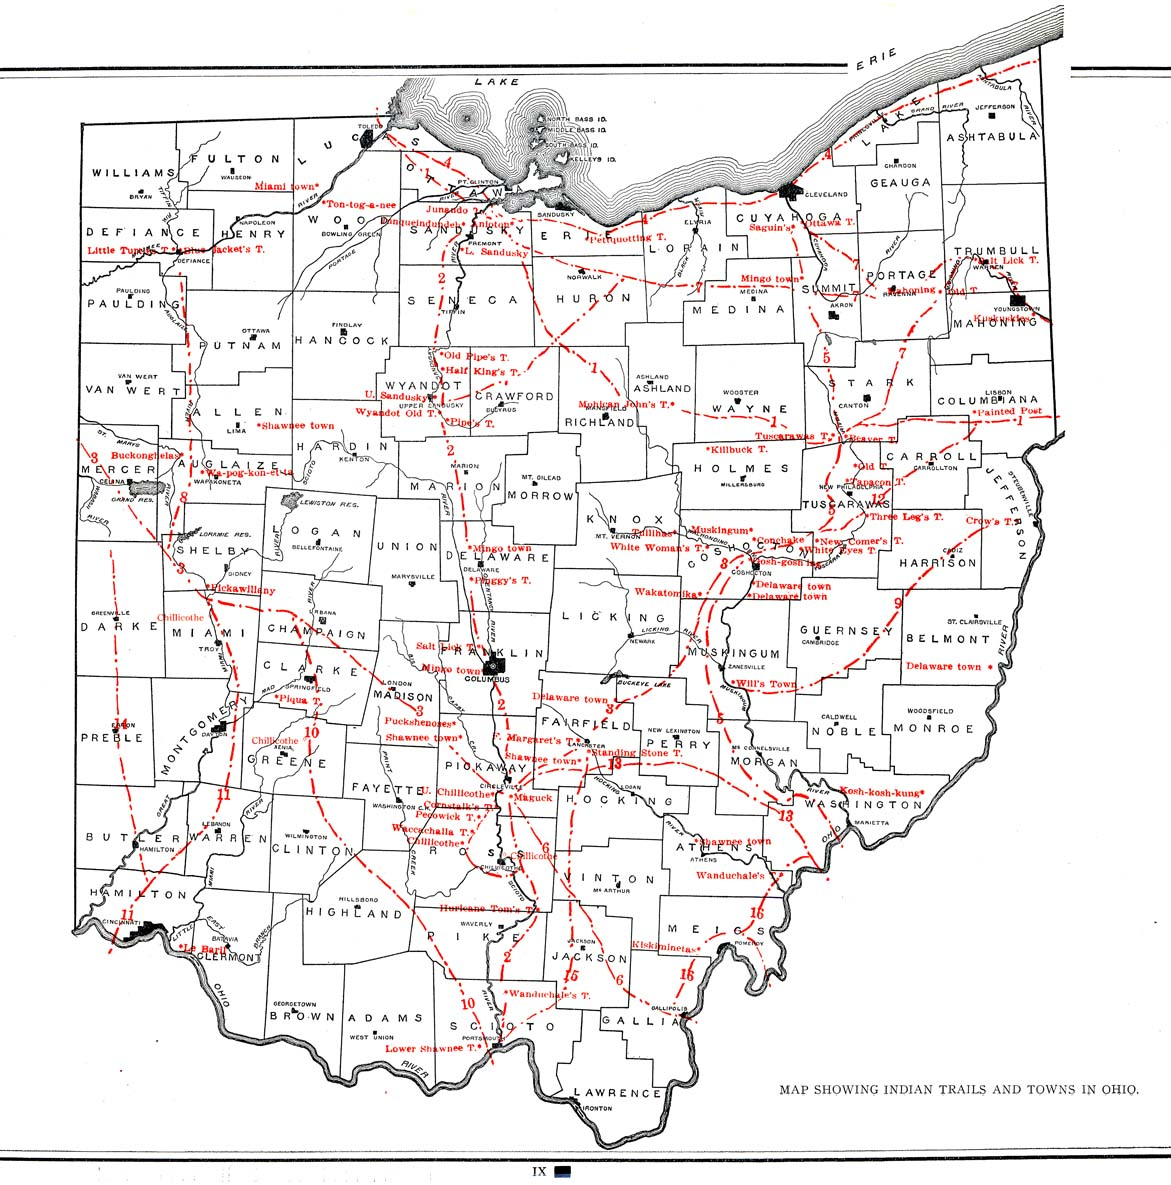 Indian Trails and Towns in Ohio on